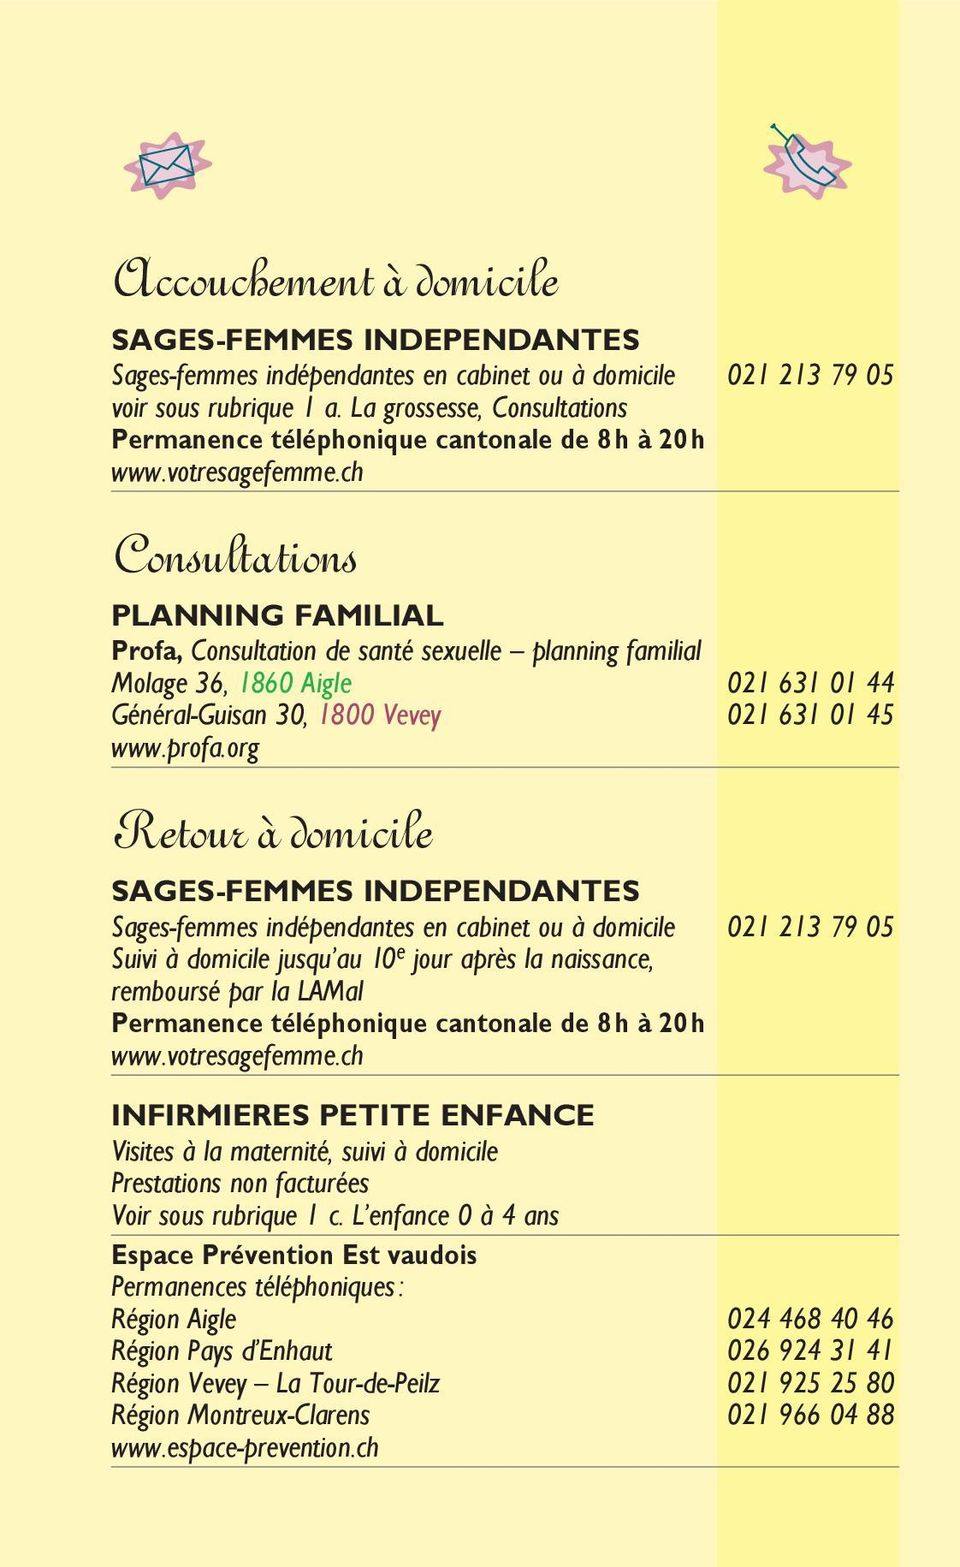 ch Consultations PLANNING FAMILIAL Profa, Consultation de santé sexuelle planning familial Molage 36, 1860 Aigle 021 631 01 44 Général-Guisan 30, 1800 Vevey 021 631 01 45 www.profa.